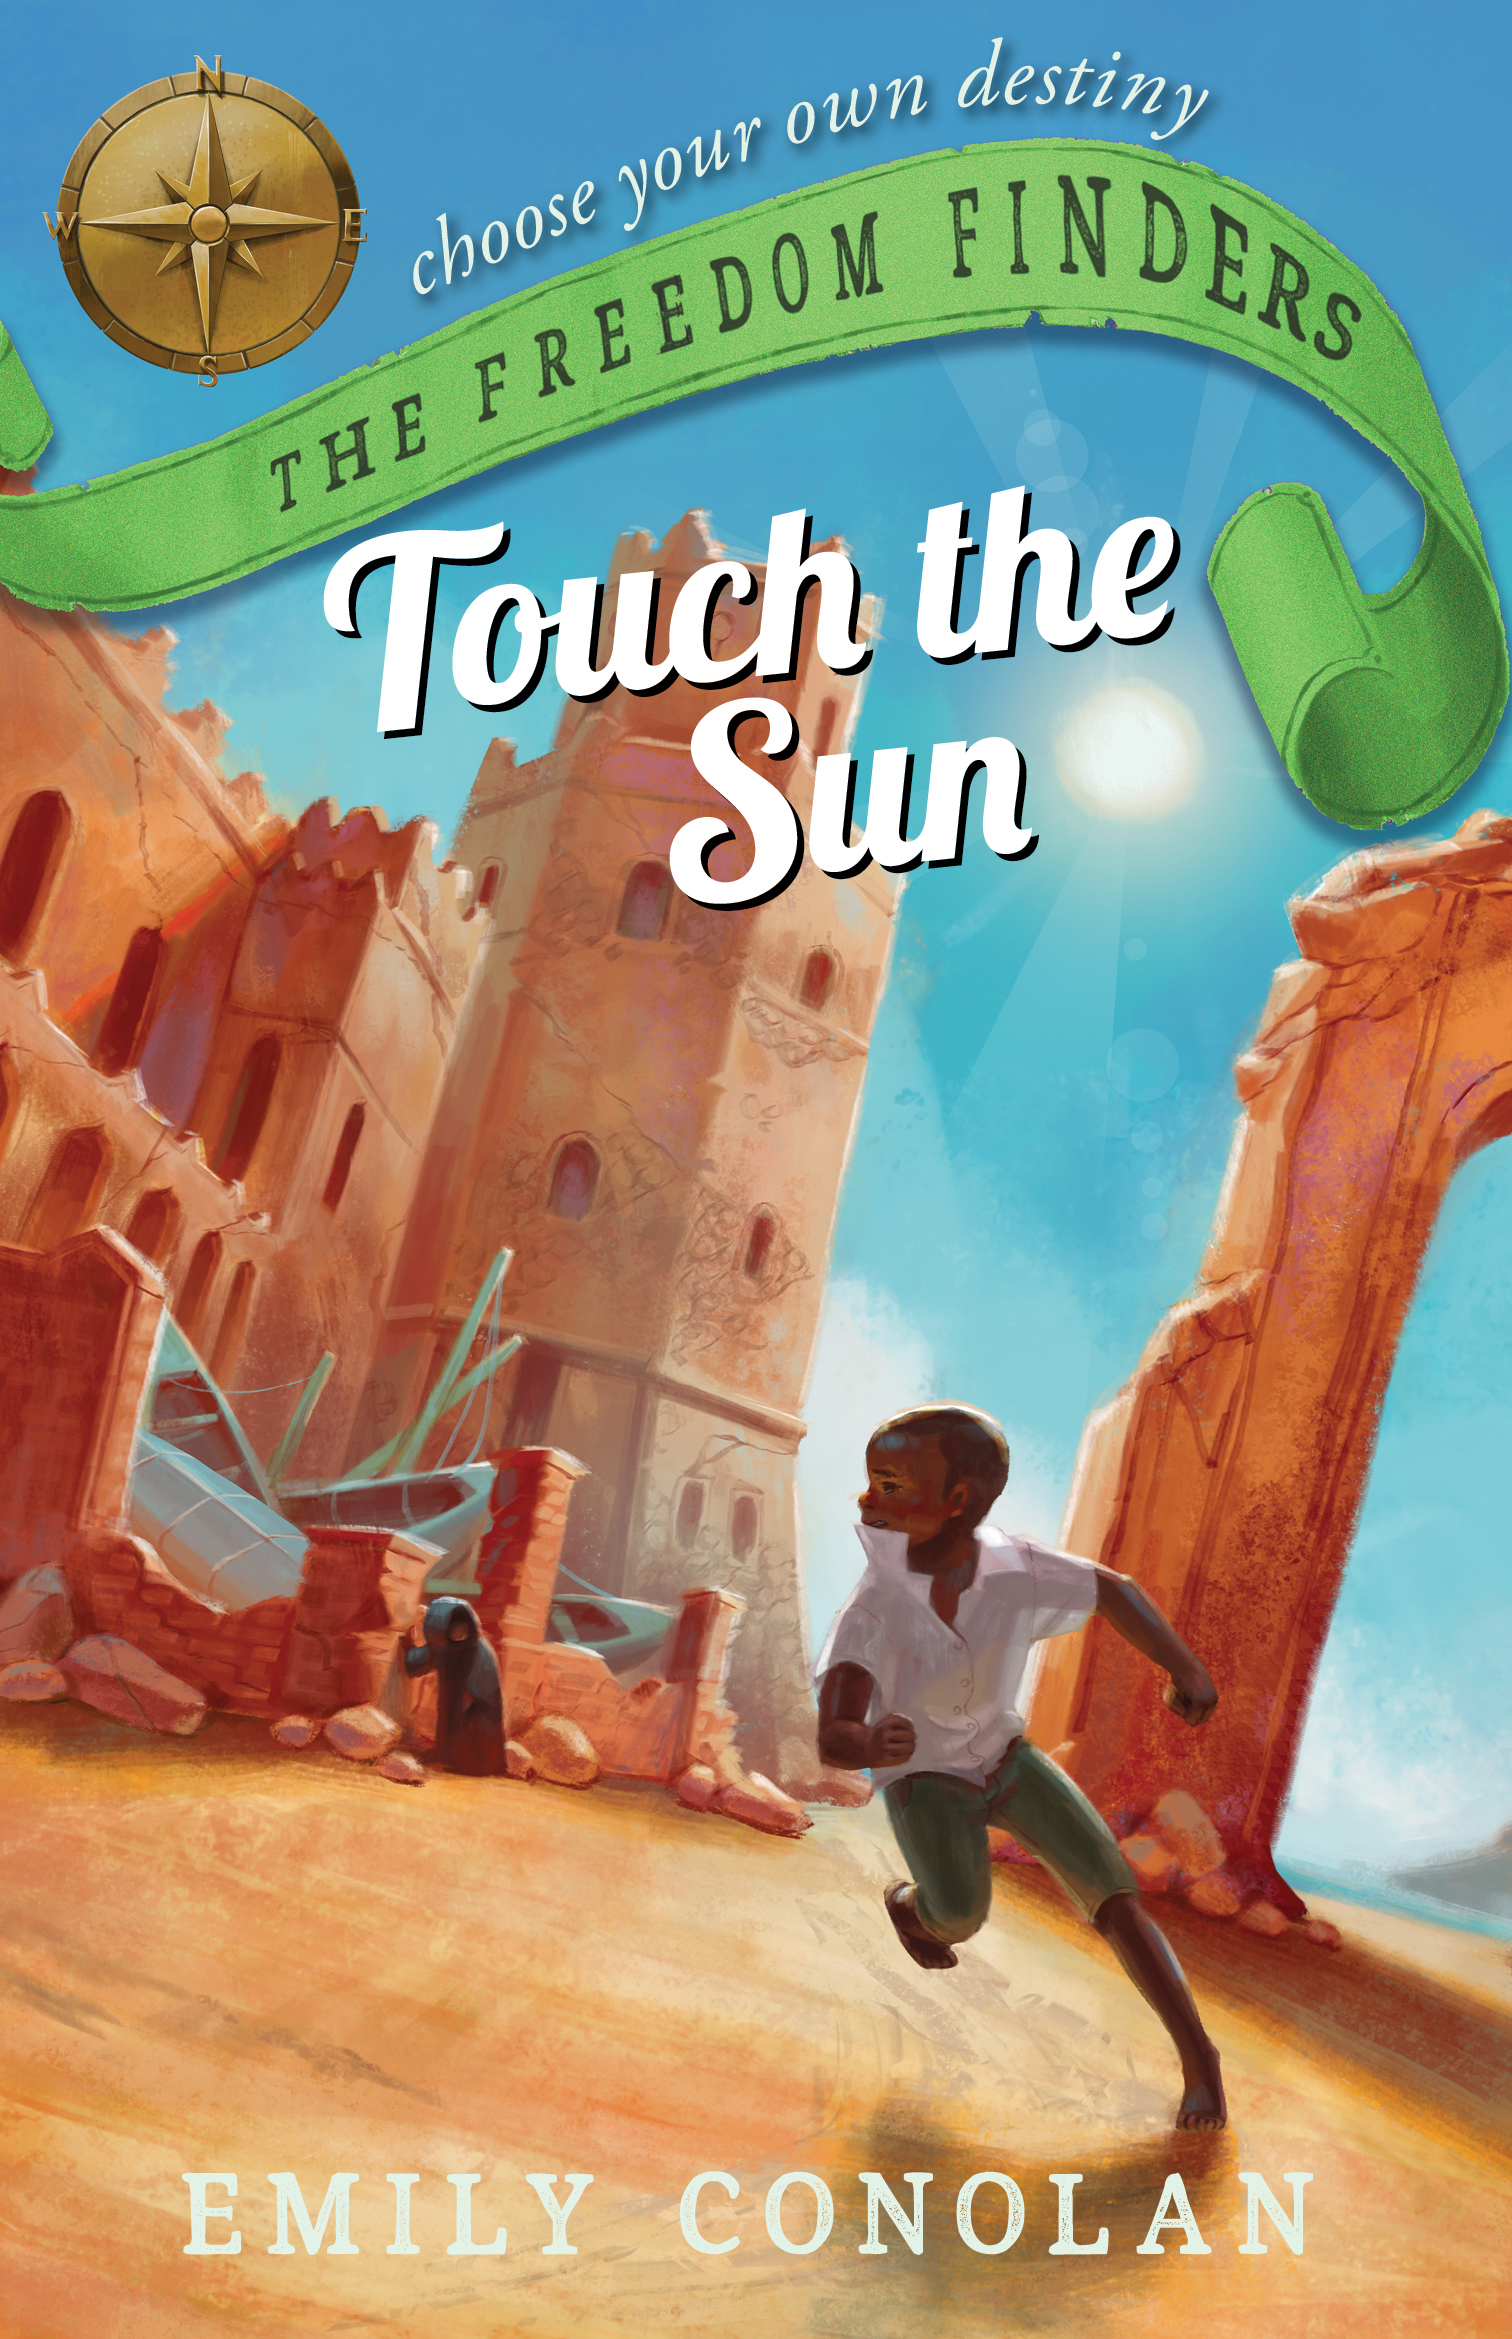 Touch the Sun by Emily Conolan